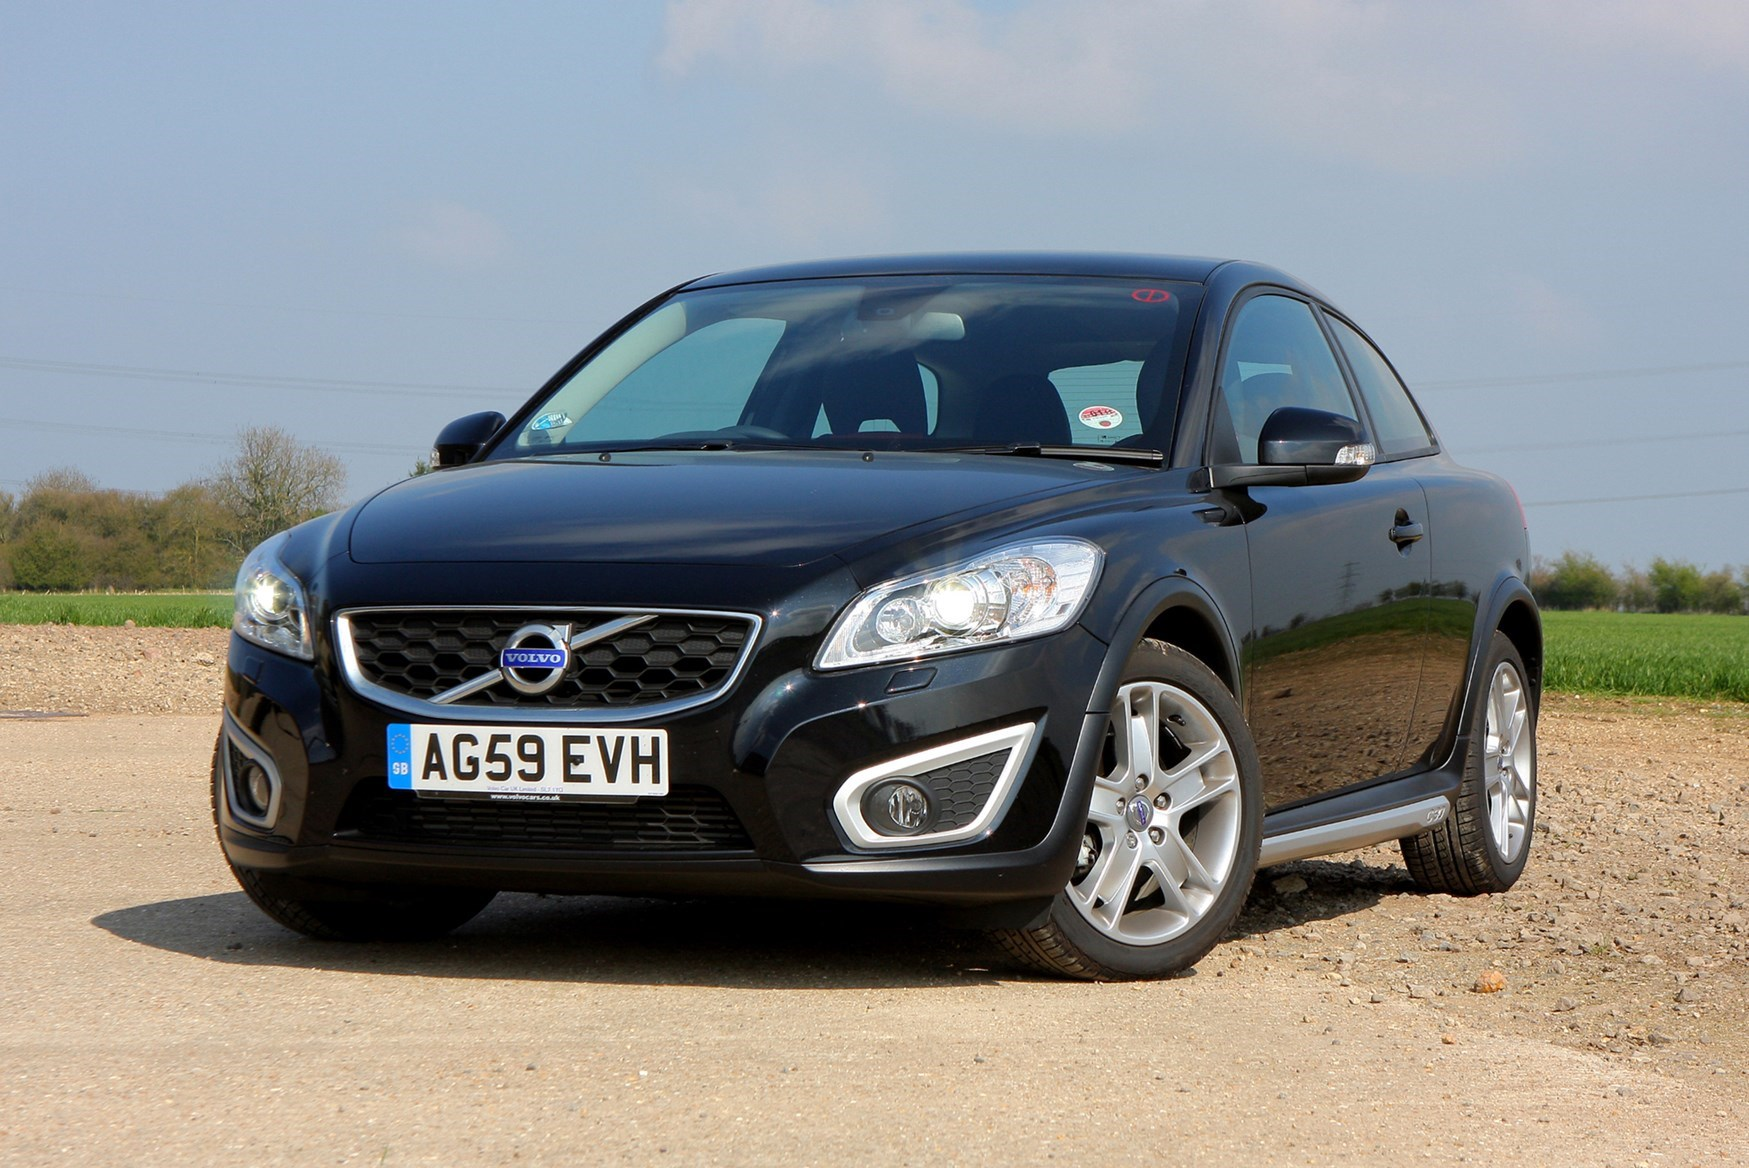 Volvo C30 - Used car buying guide | Parkers